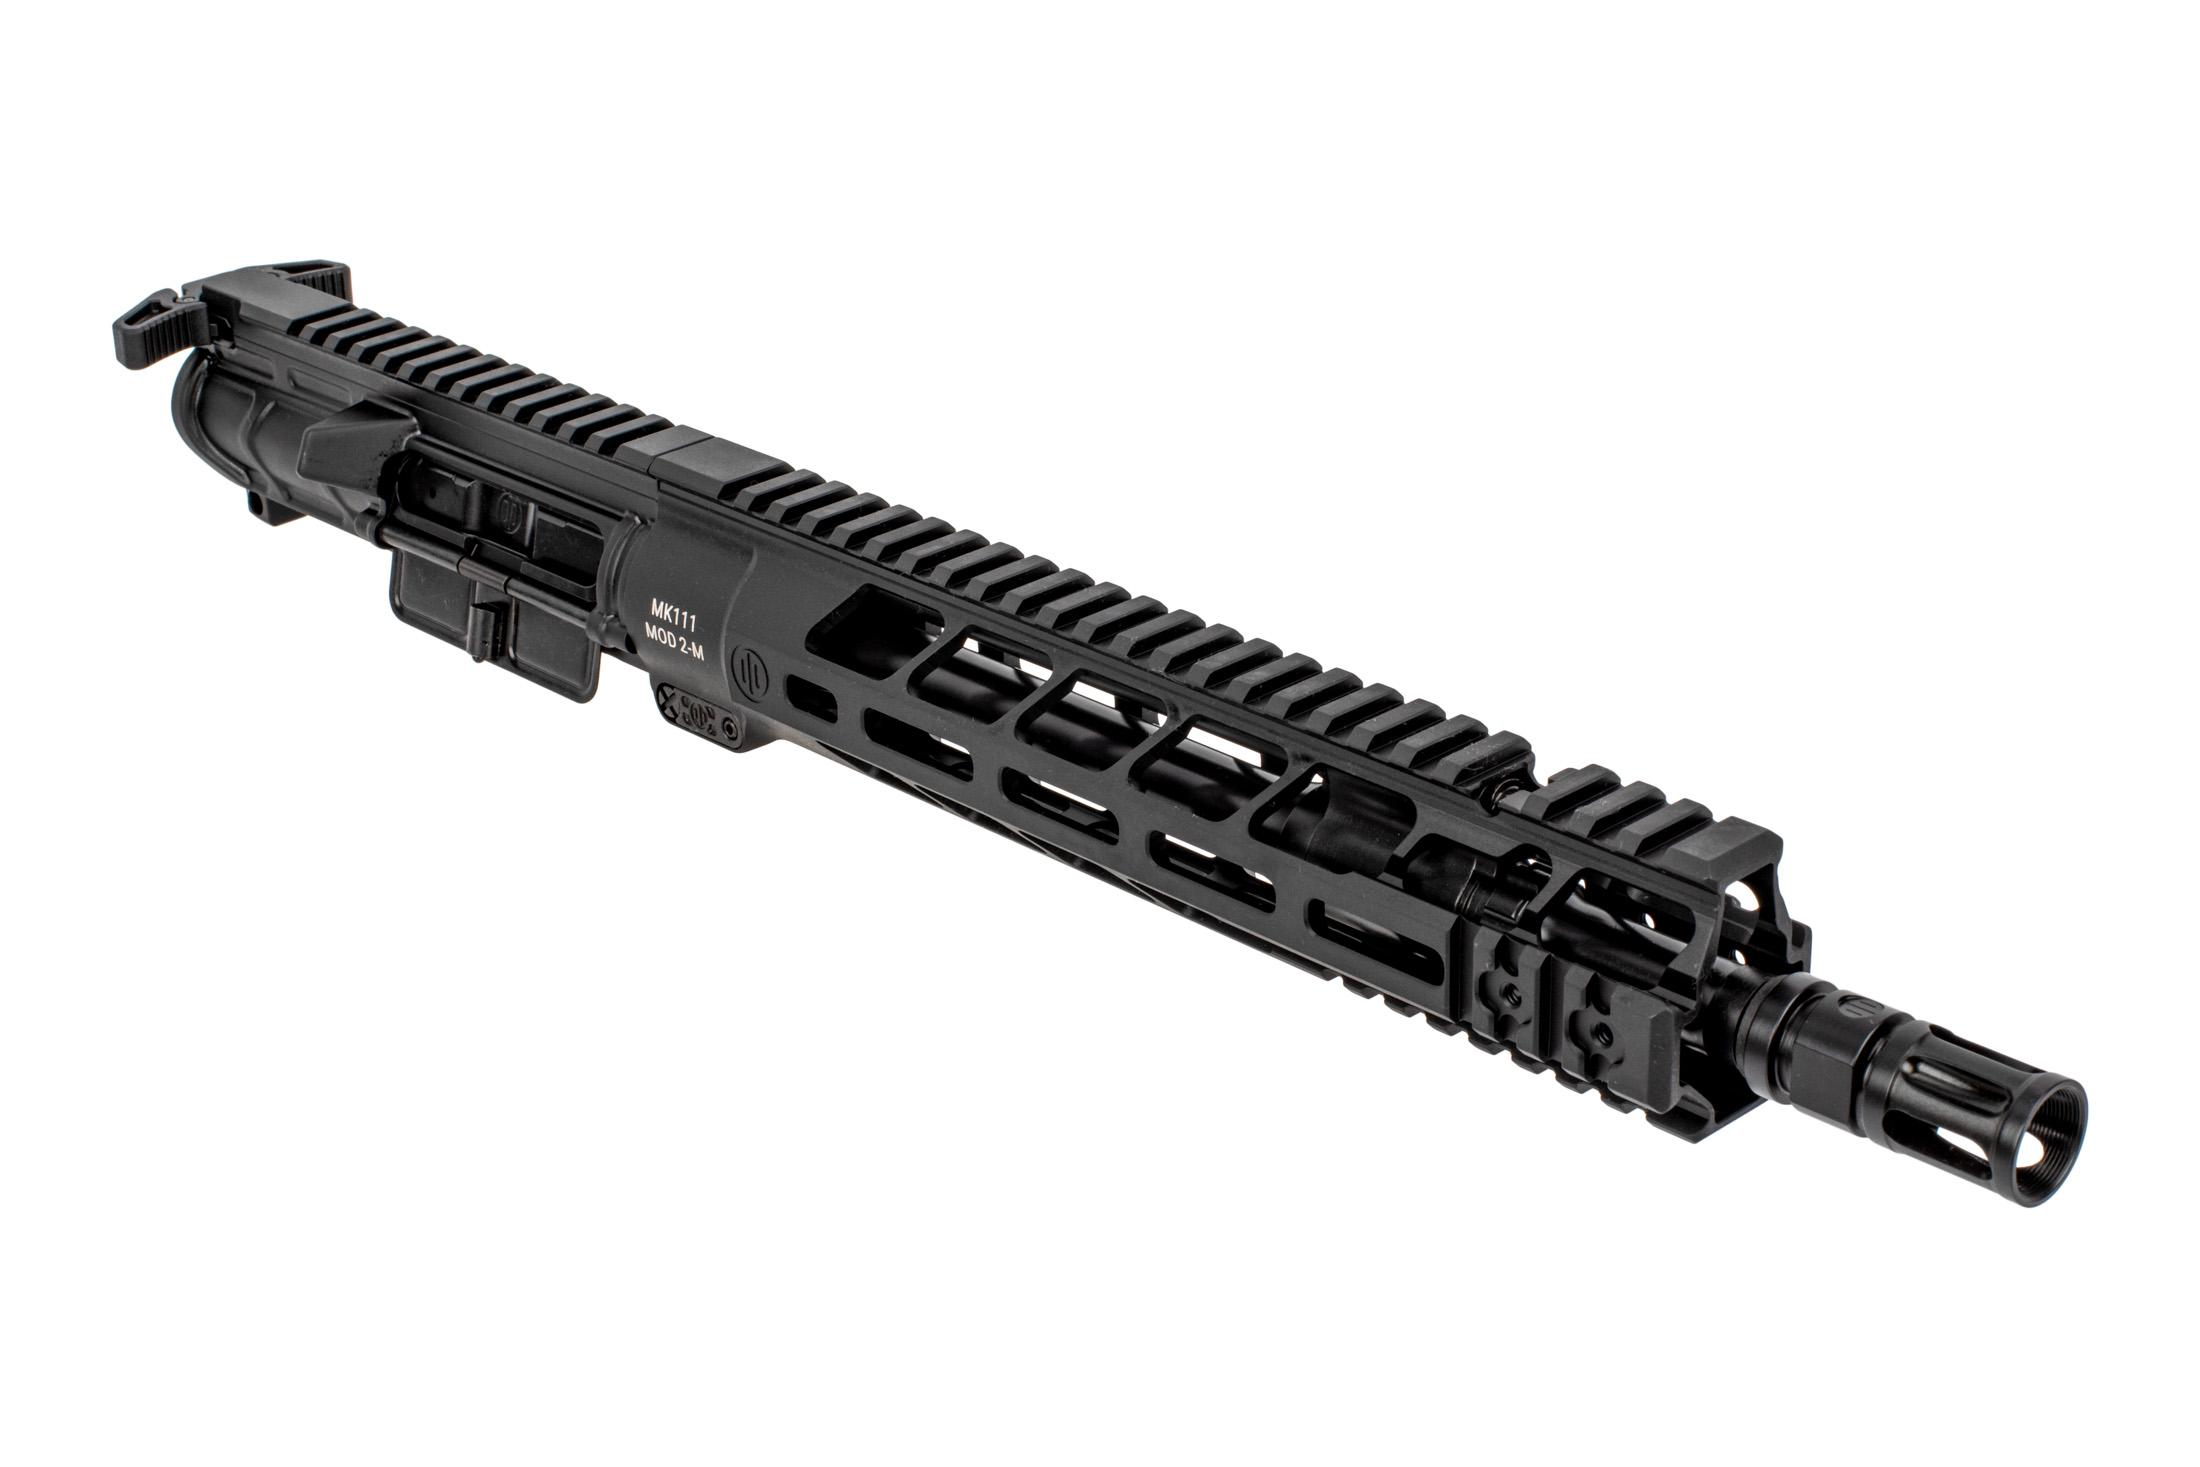 PWS MK111 MOD 2-M Complete AR15 upper receiver is chambered in .223 wylde